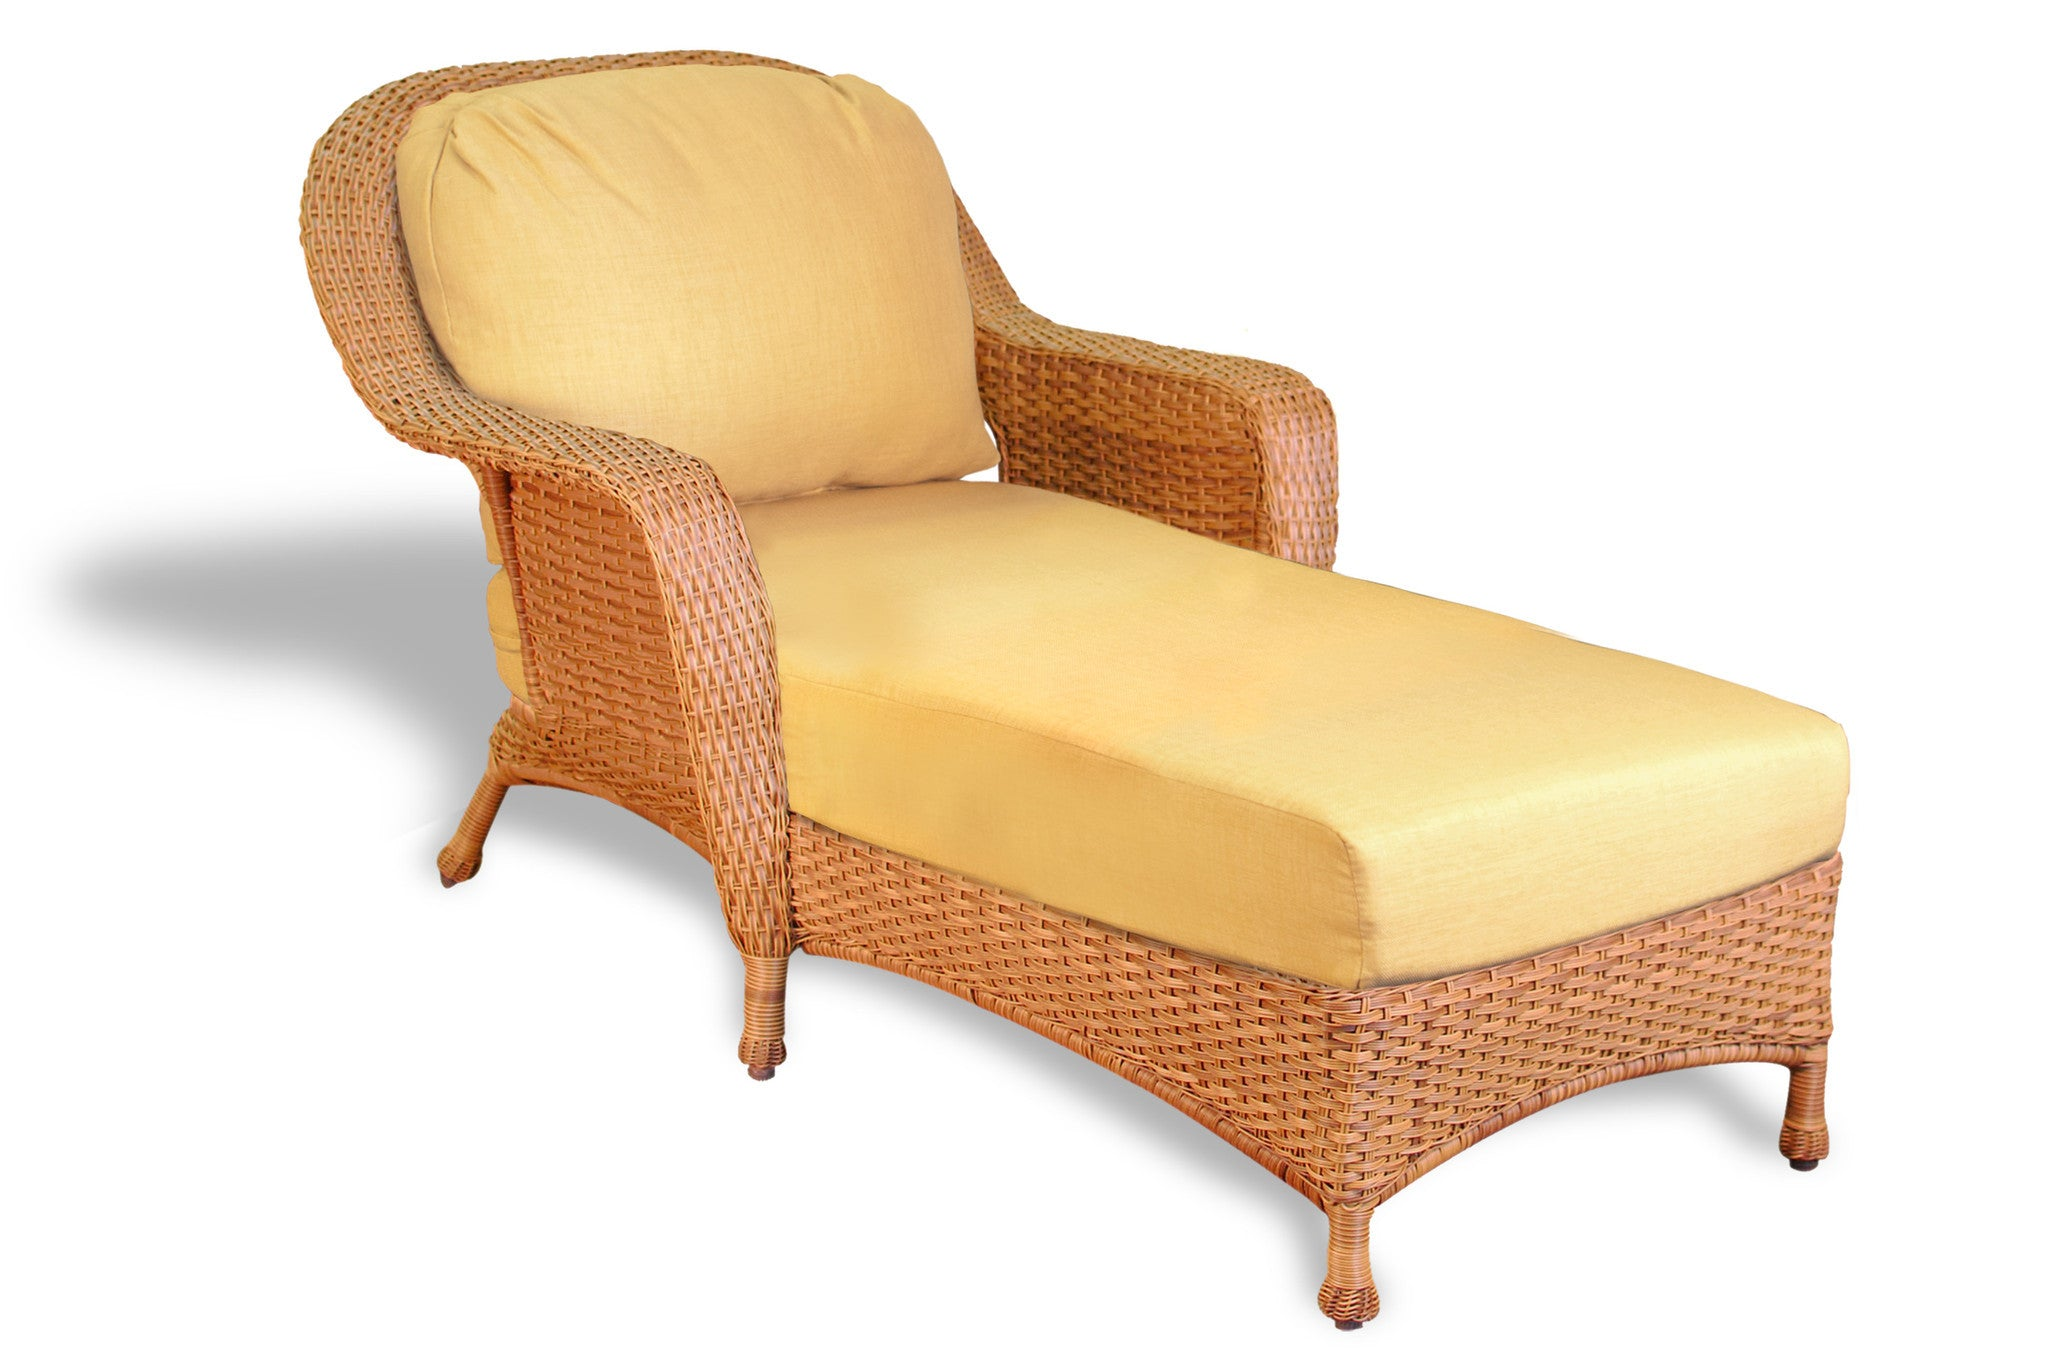 1aee3947bd0 ... The Lexington All Weather Wicker Chaise Lounger - Tortuga Outdoor ...